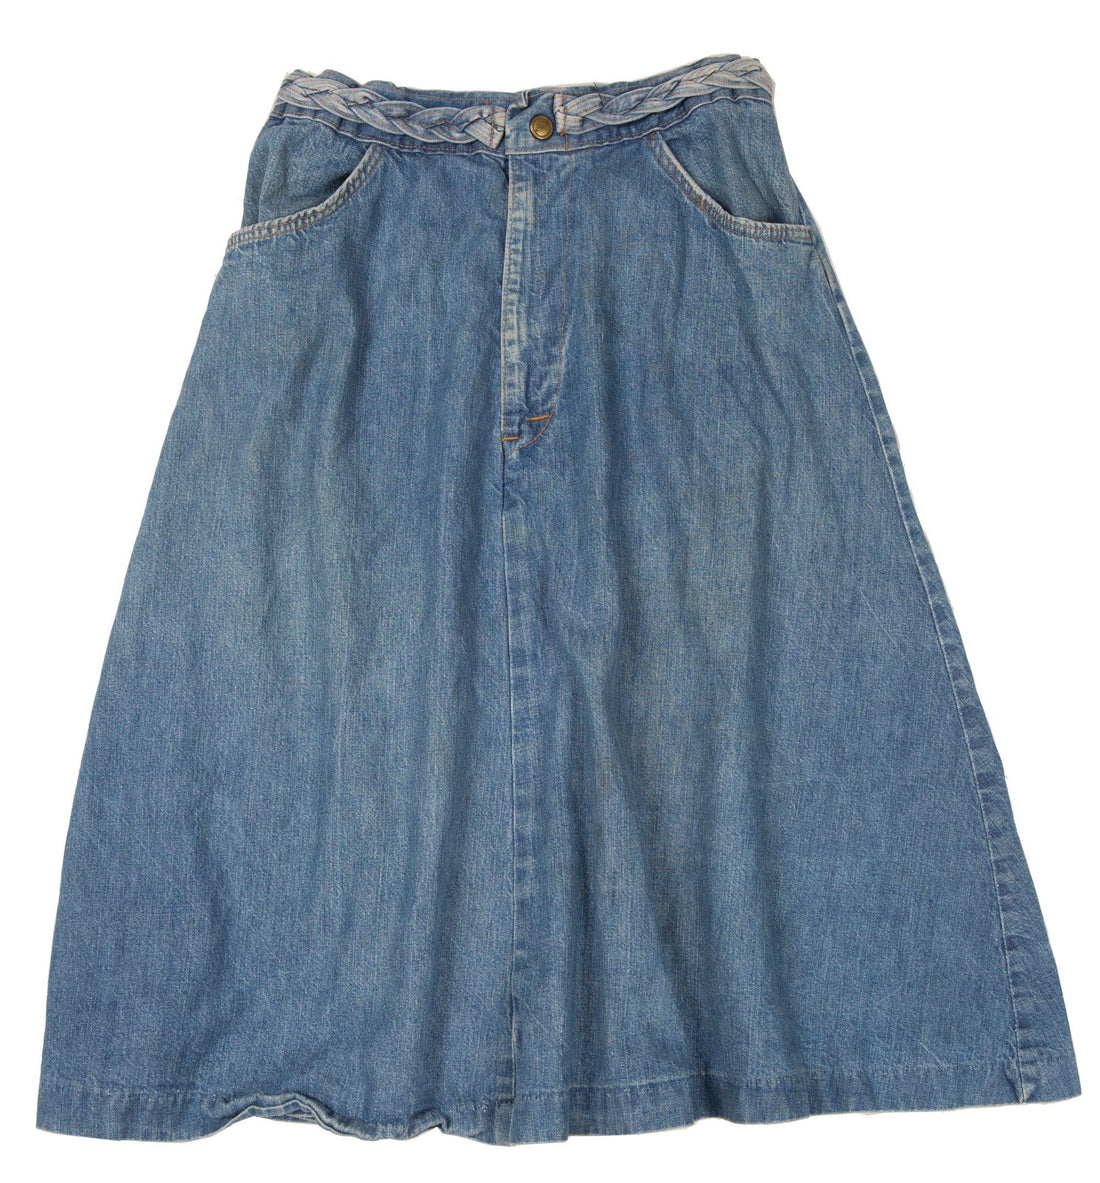 Vintage 60's Denim A-line Skirt with denim braiding - Vintage - Iron and Resin